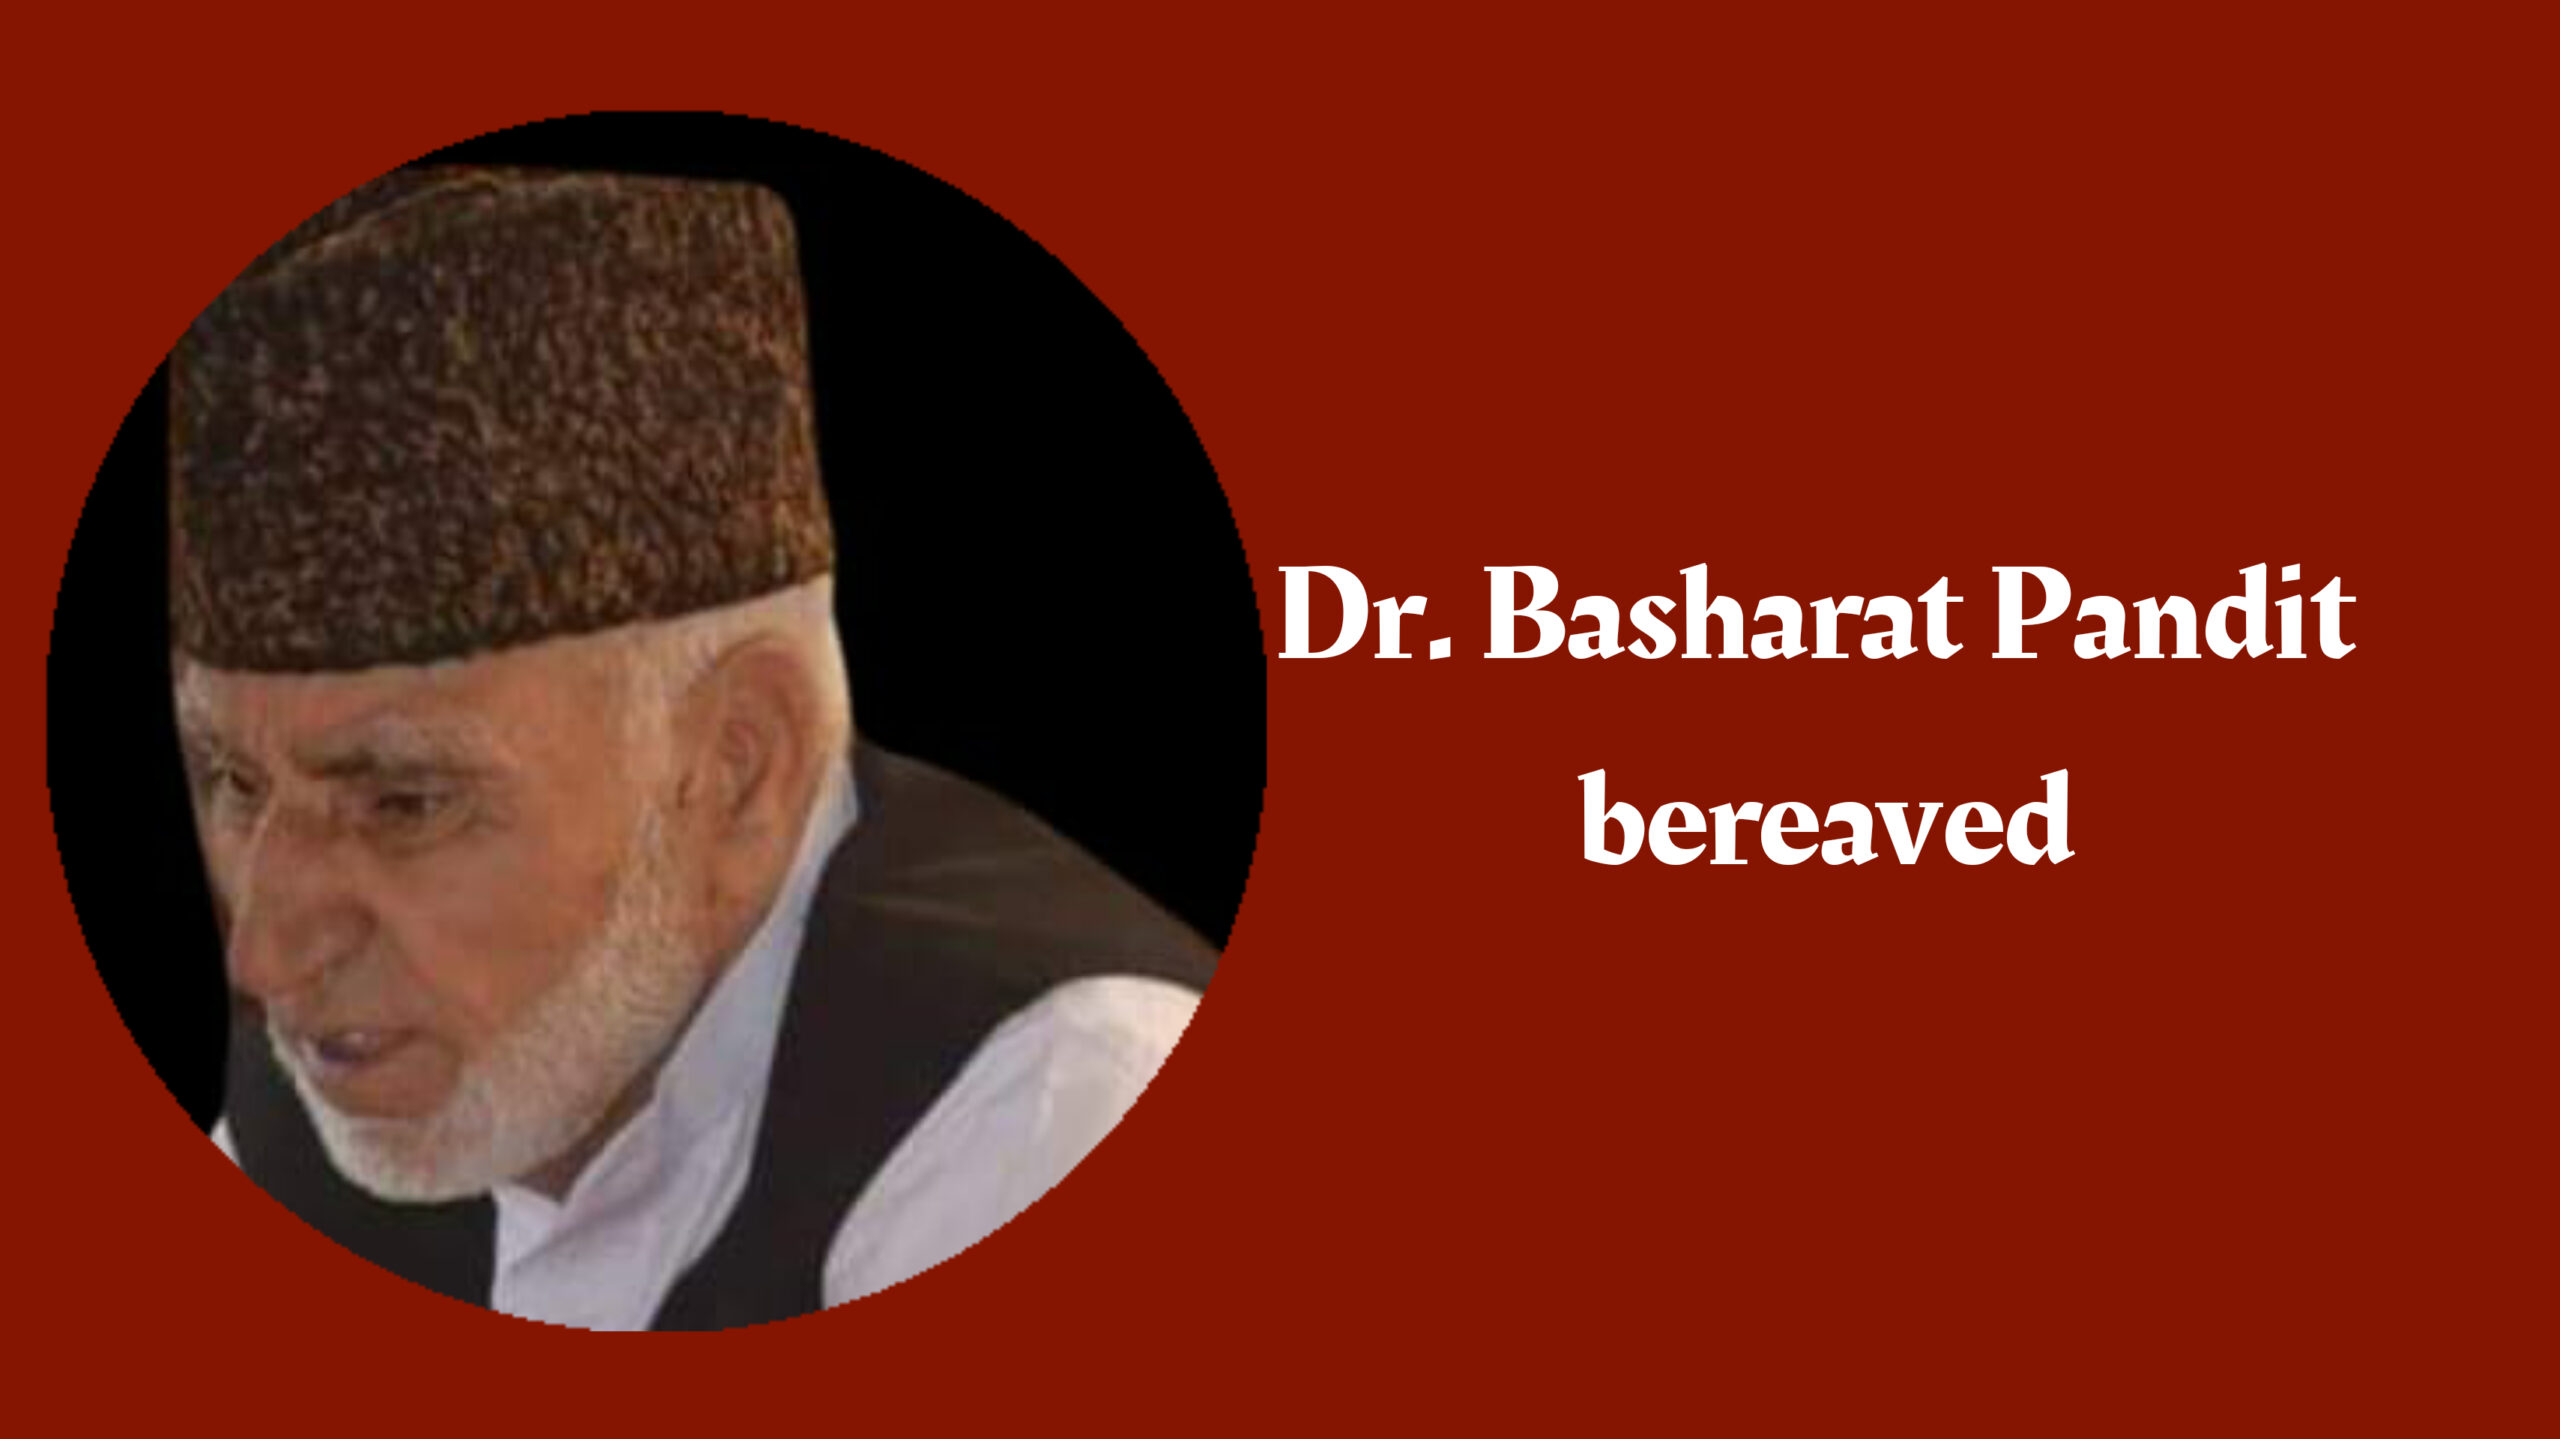 Renowned gynaecologist Dr. Basharat Pandit bereaved